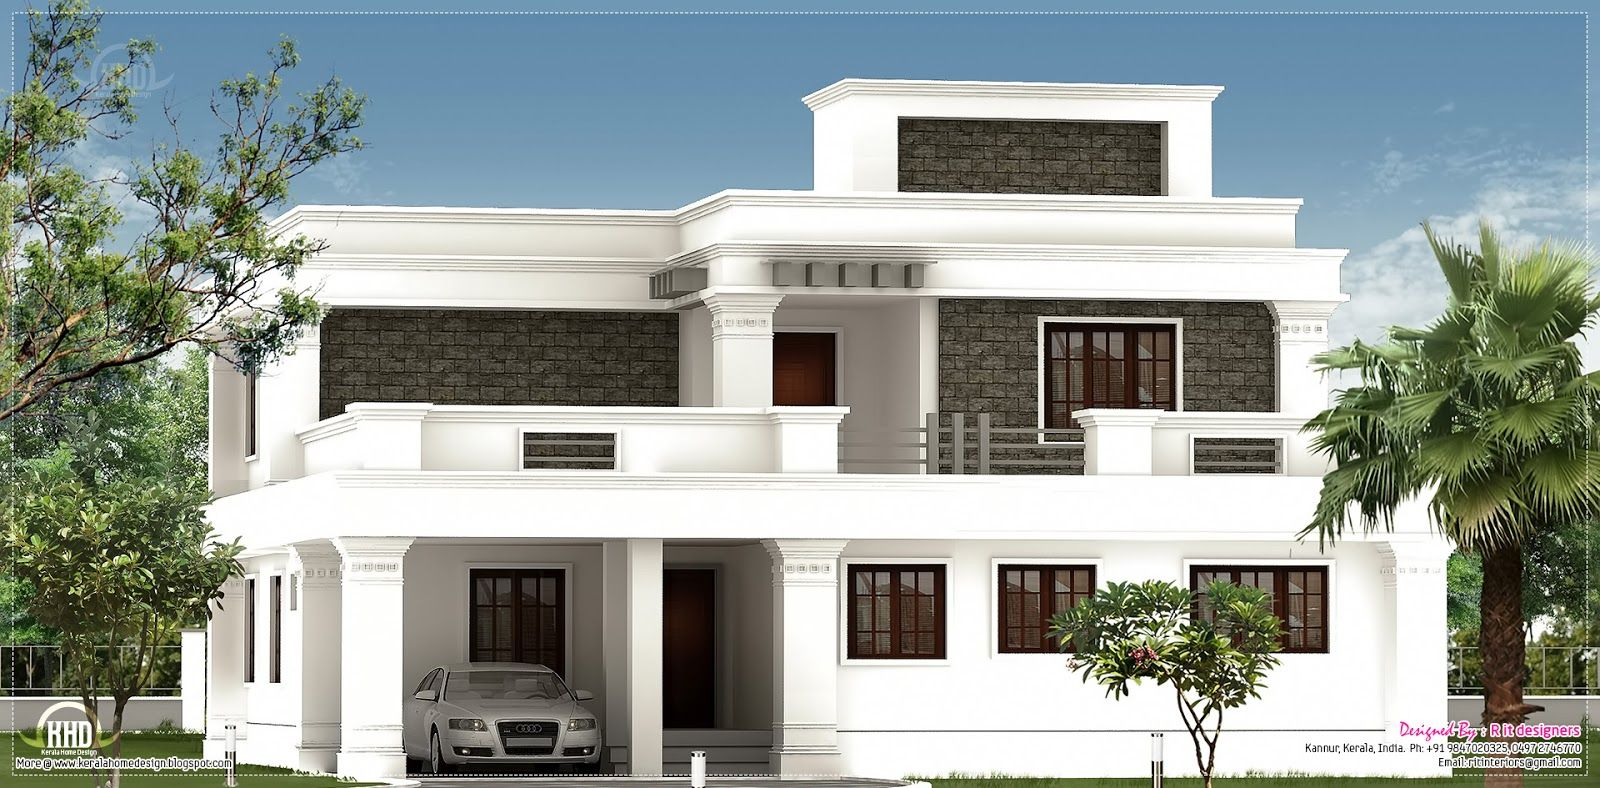 Flat roof homes designs flat roof villa exterior in 2400 for Home outer design images